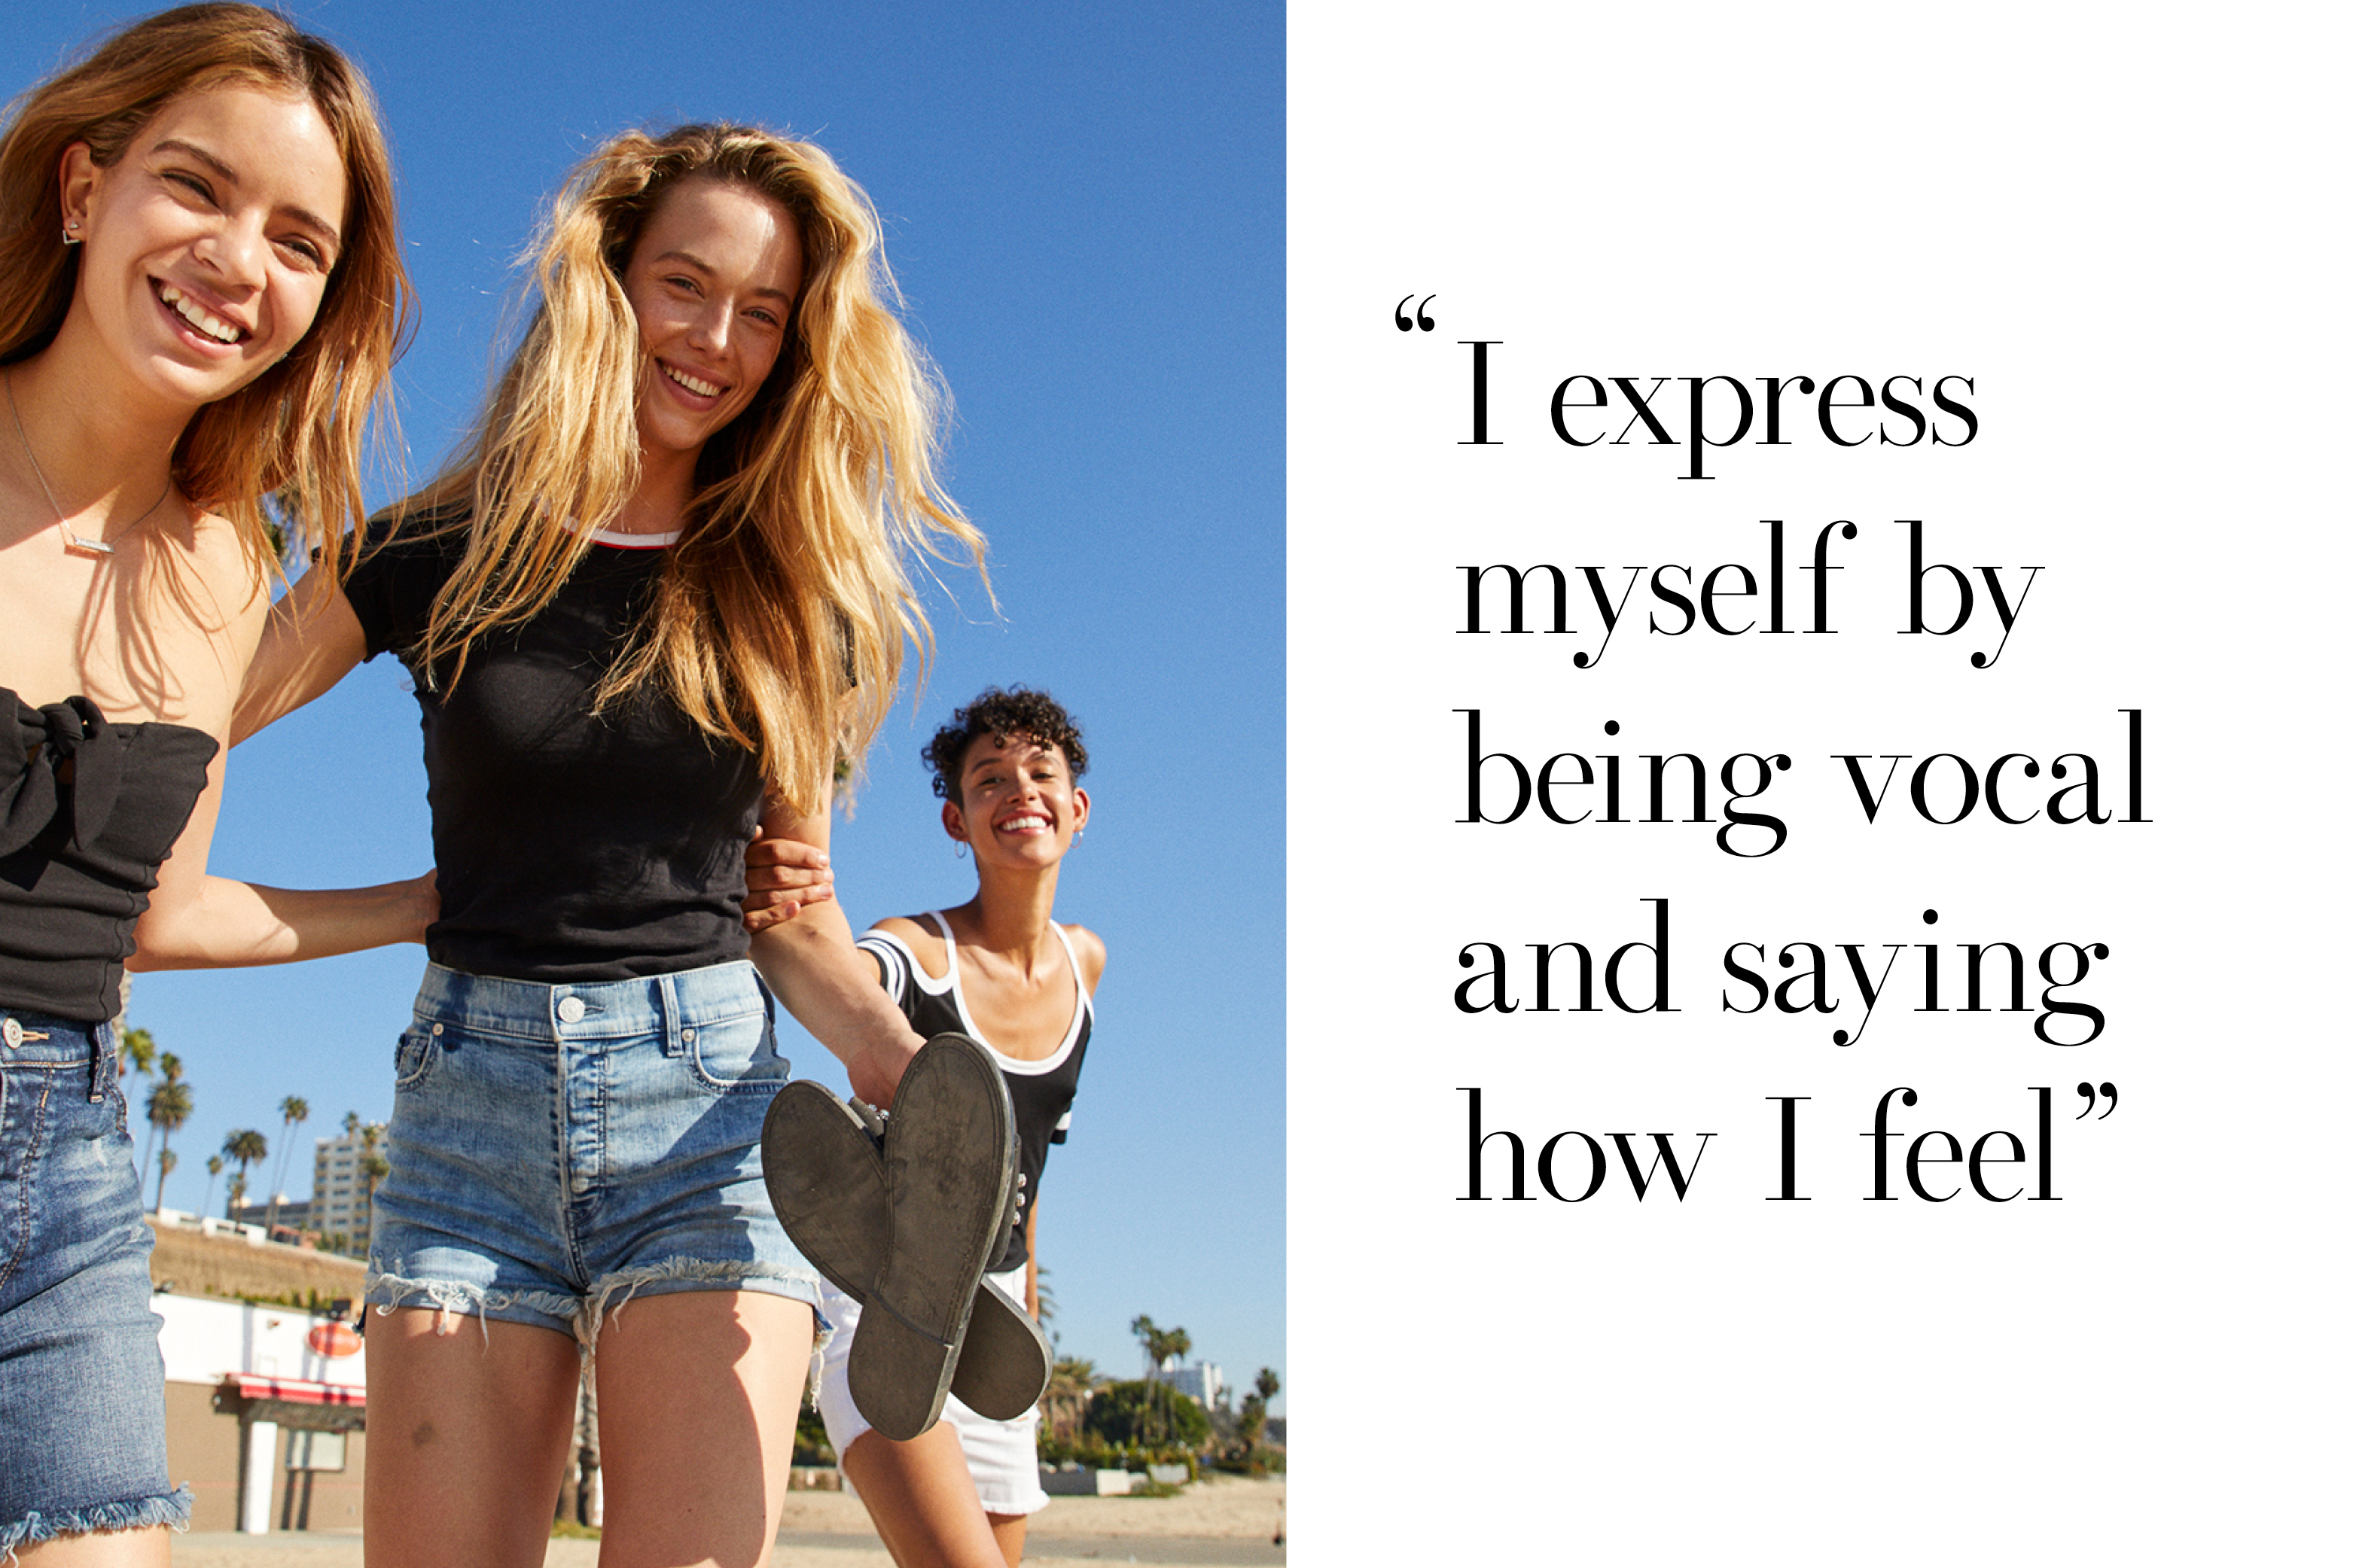 hannah-ferguson-express-myself-by-being-vocal